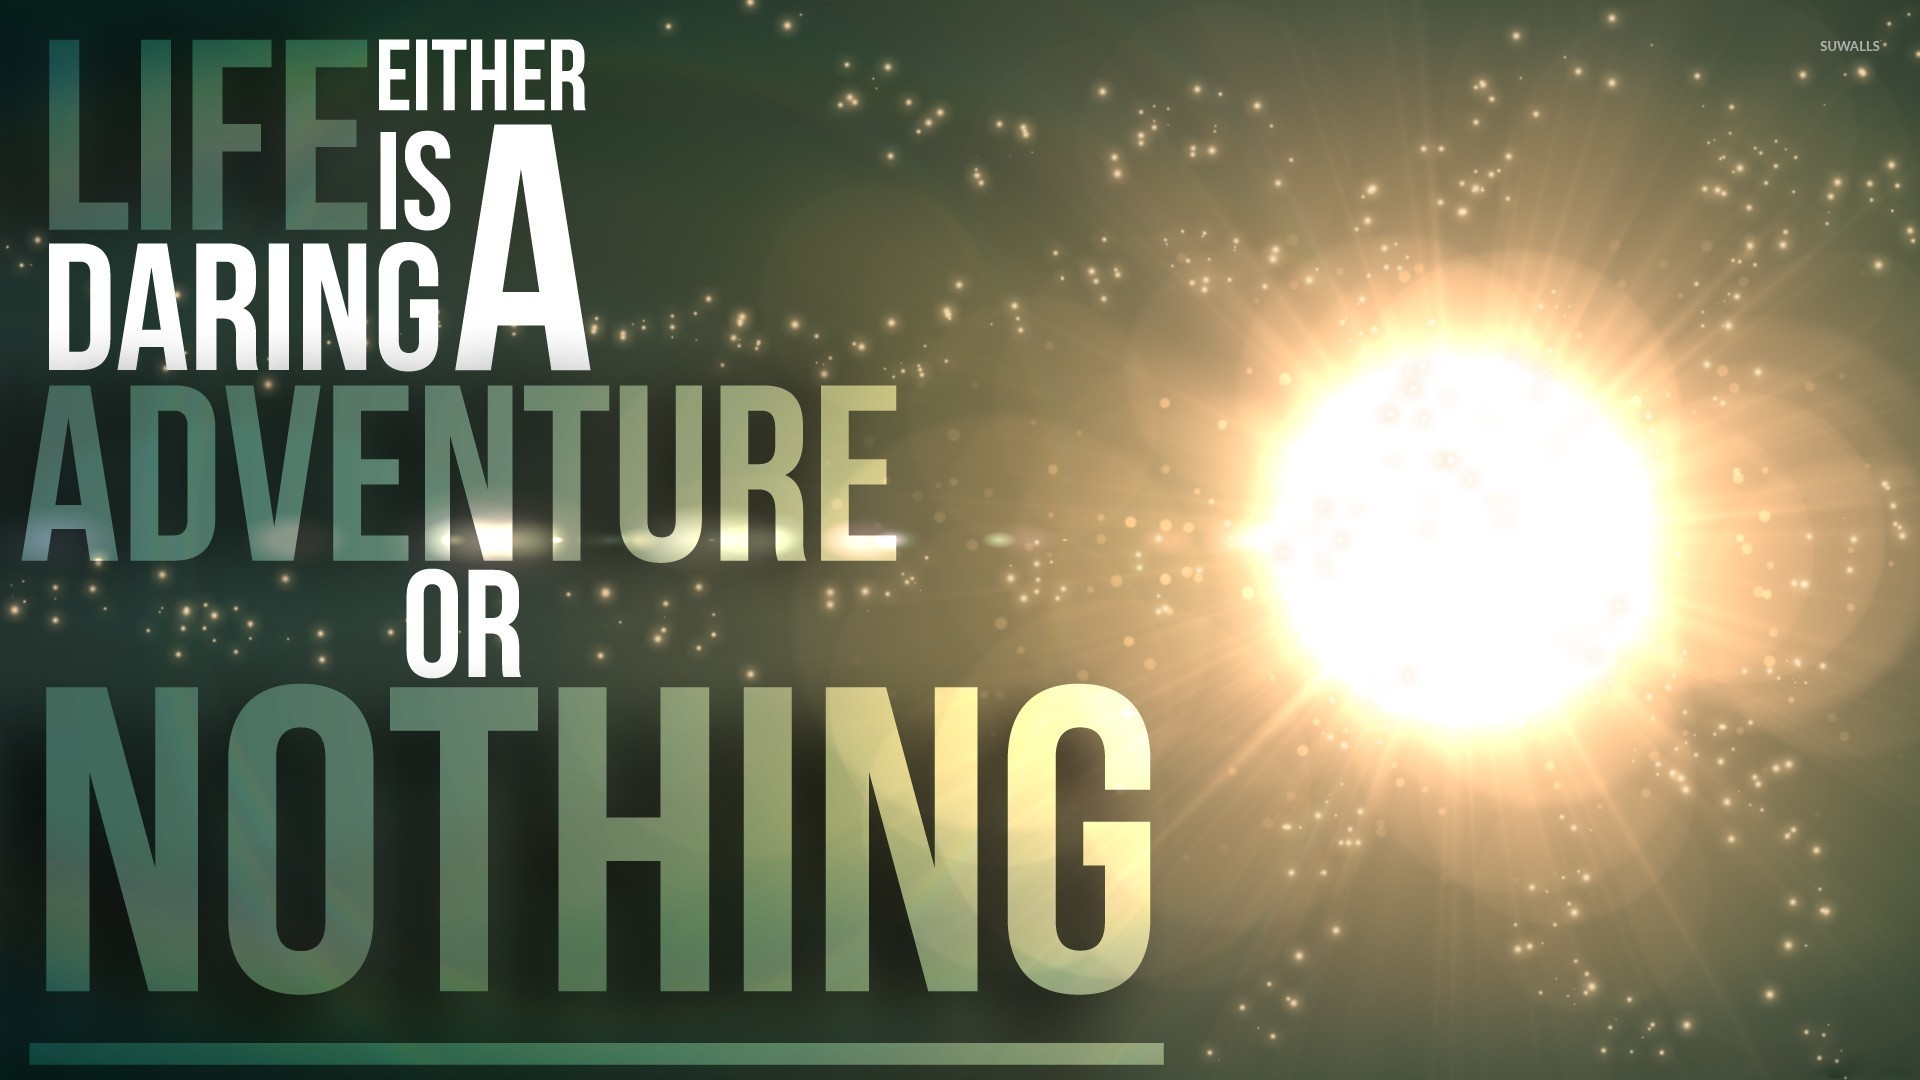 Adventure Quotes Pictures Images: Life Is An Adventure Or Nothing Wallpaper